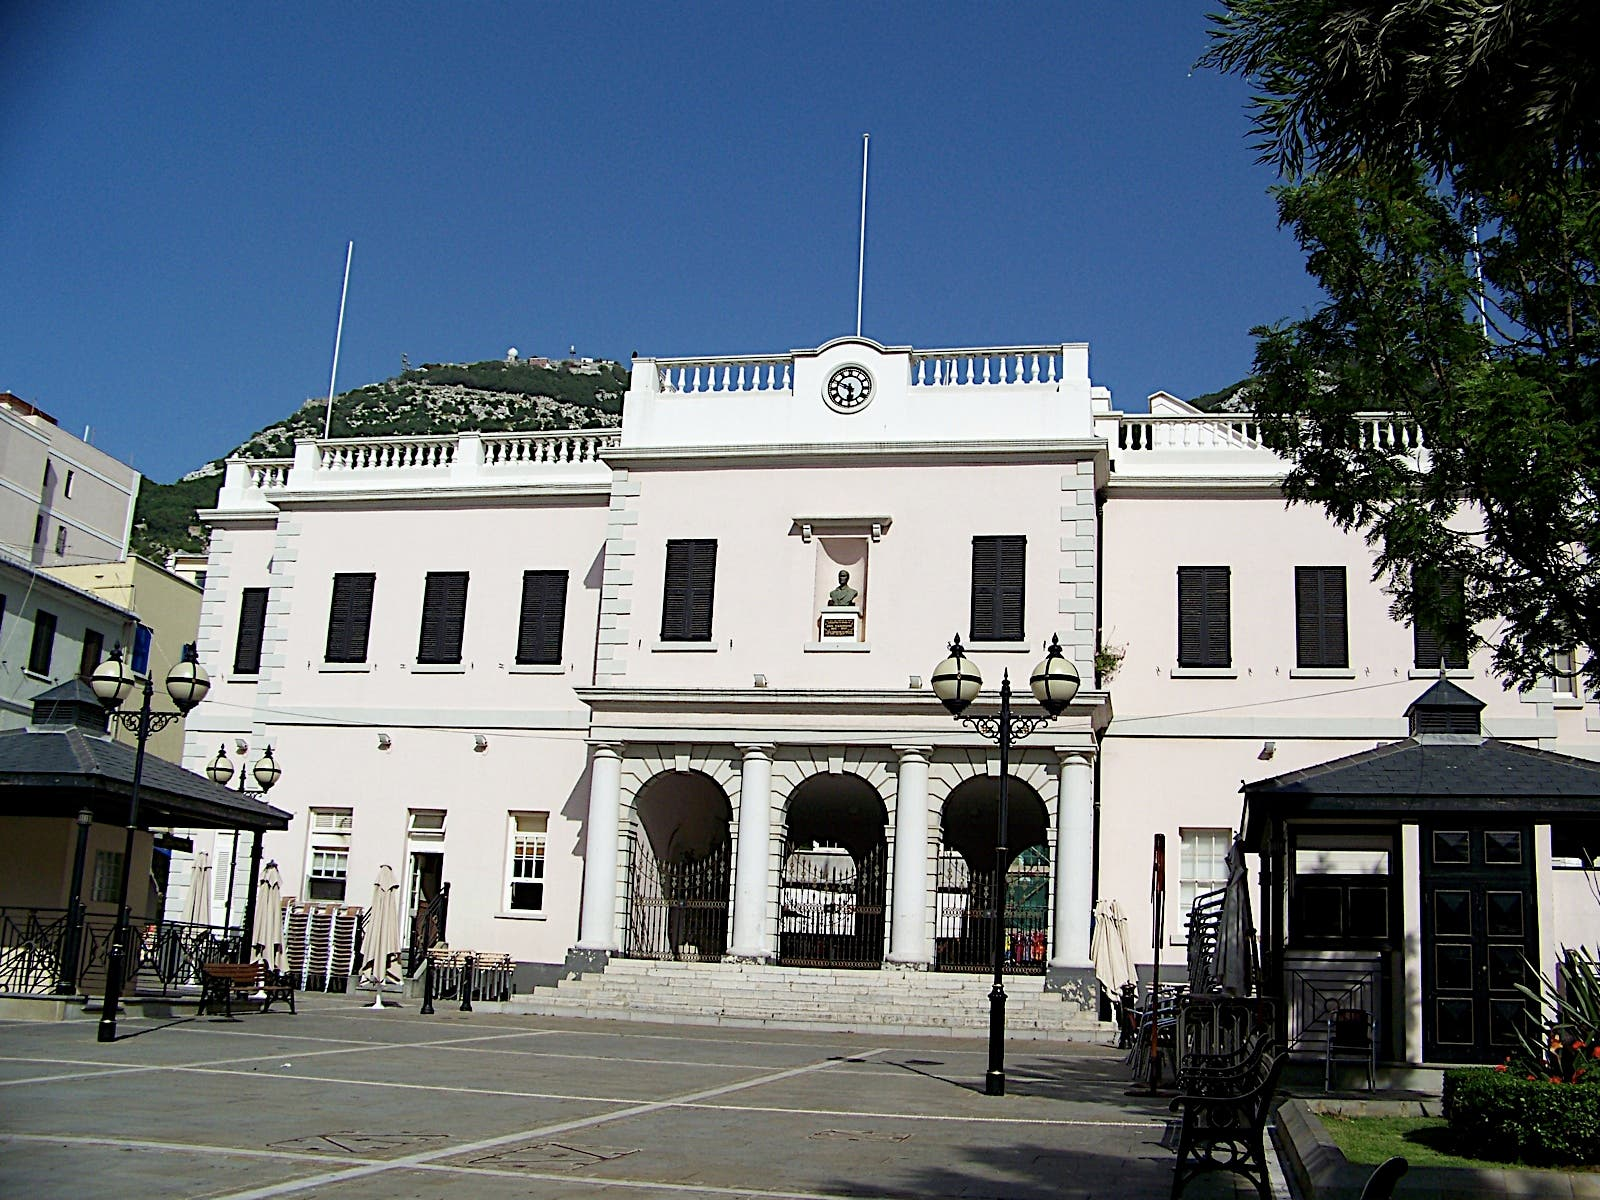 Gibraltar government launches investigation into bullying accusations